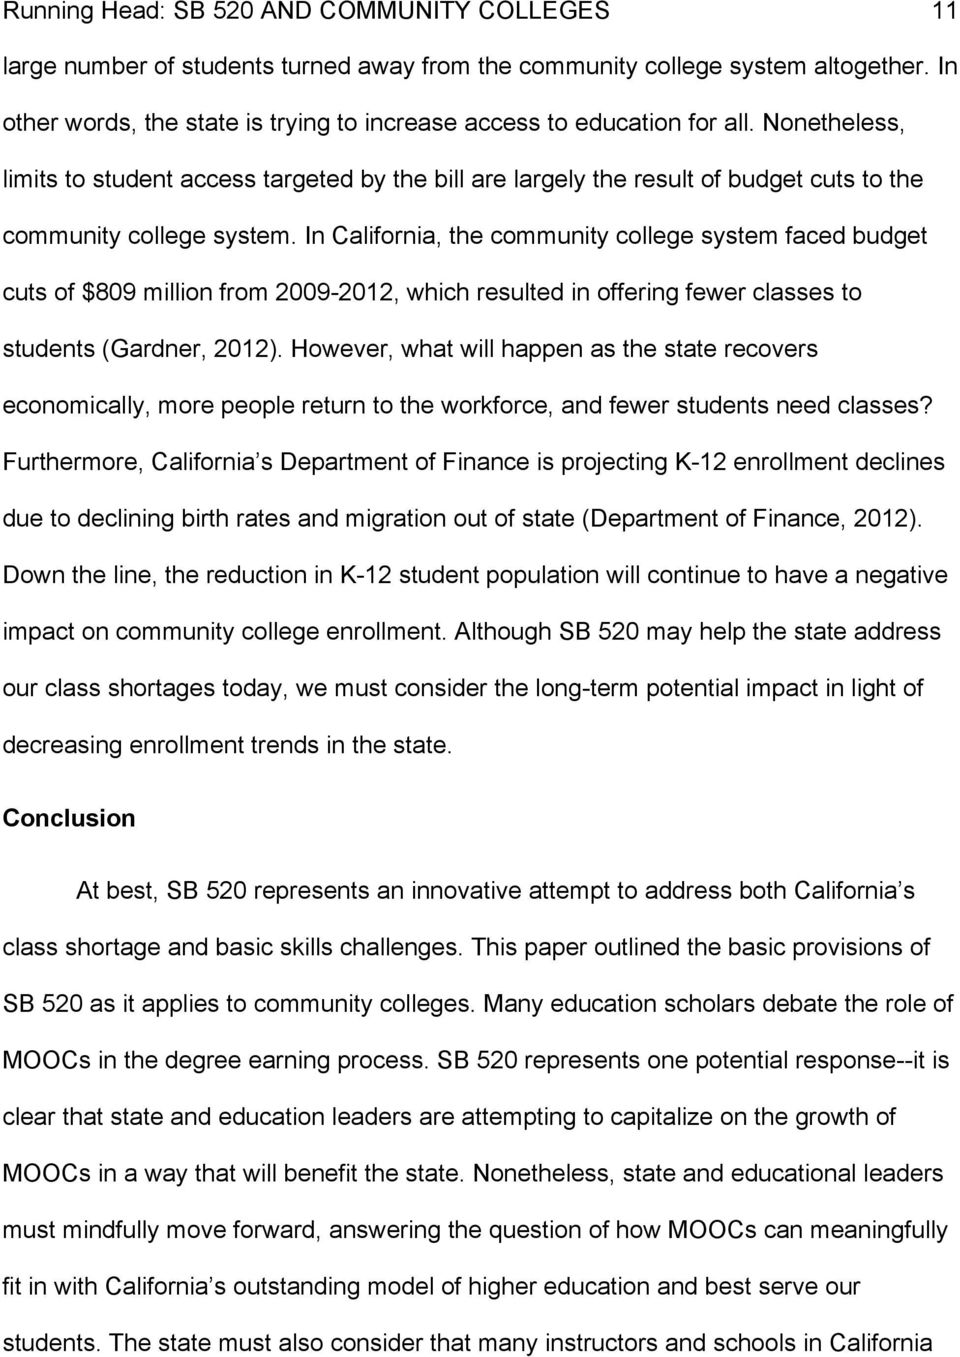 In California, the community college system faced budget cuts of $809 million from 2009-2012, which resulted in offering fewer classes to students (Gardner, 2012).